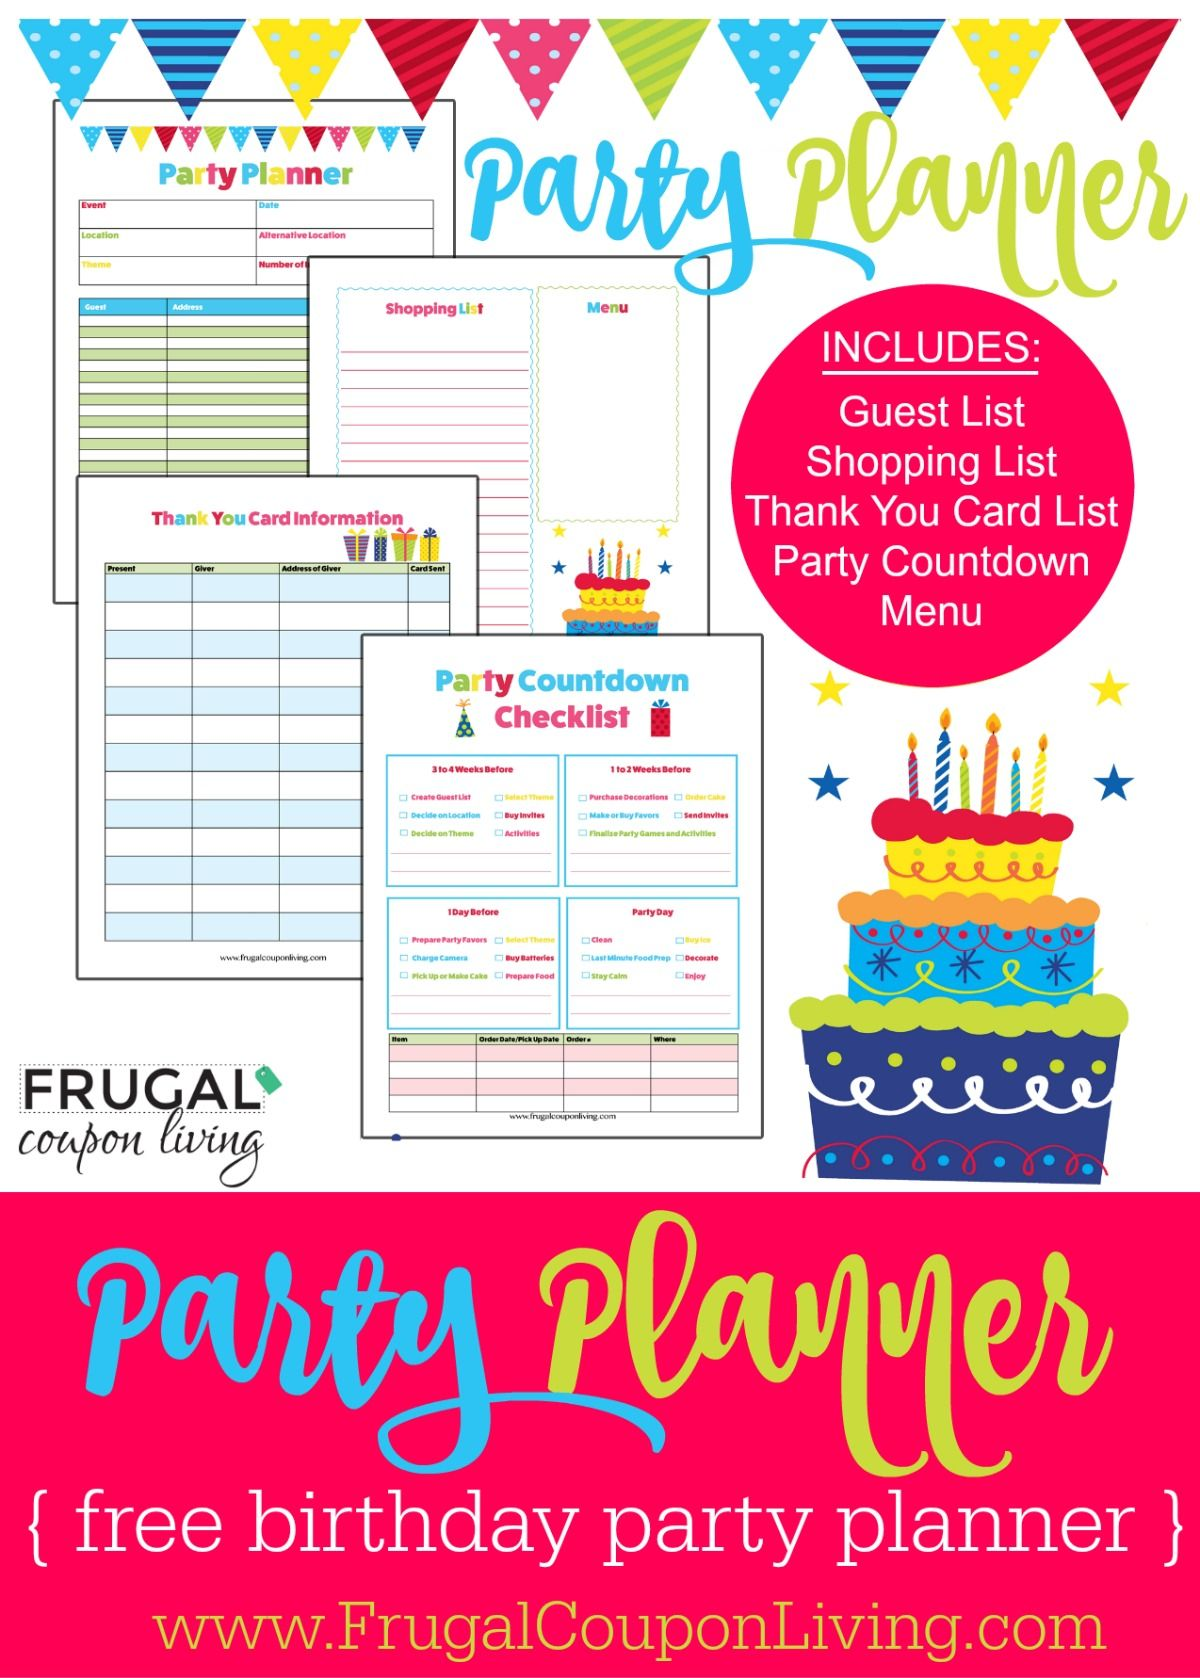 Free Birthday Party Planner Party Planner Birthday Party